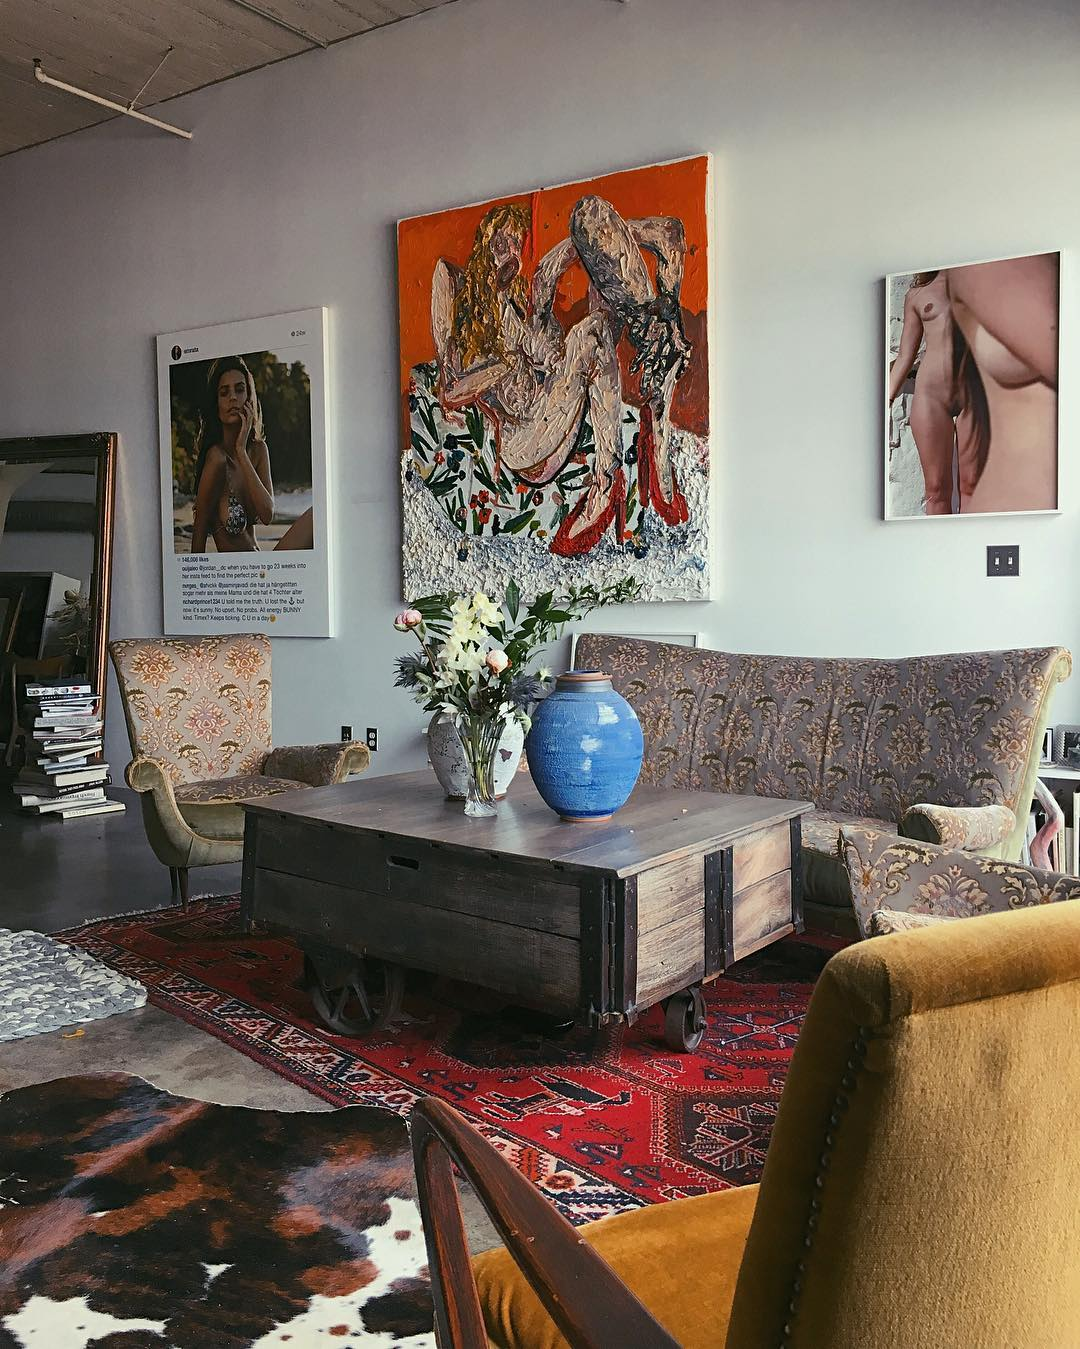 ... For Body Positivity And Sexual Expression, Her Art Collection Reflects  That, But Itu0027s Clear She Doesnu0027t Take It All Too Seriously. In Her Living  Area, ...